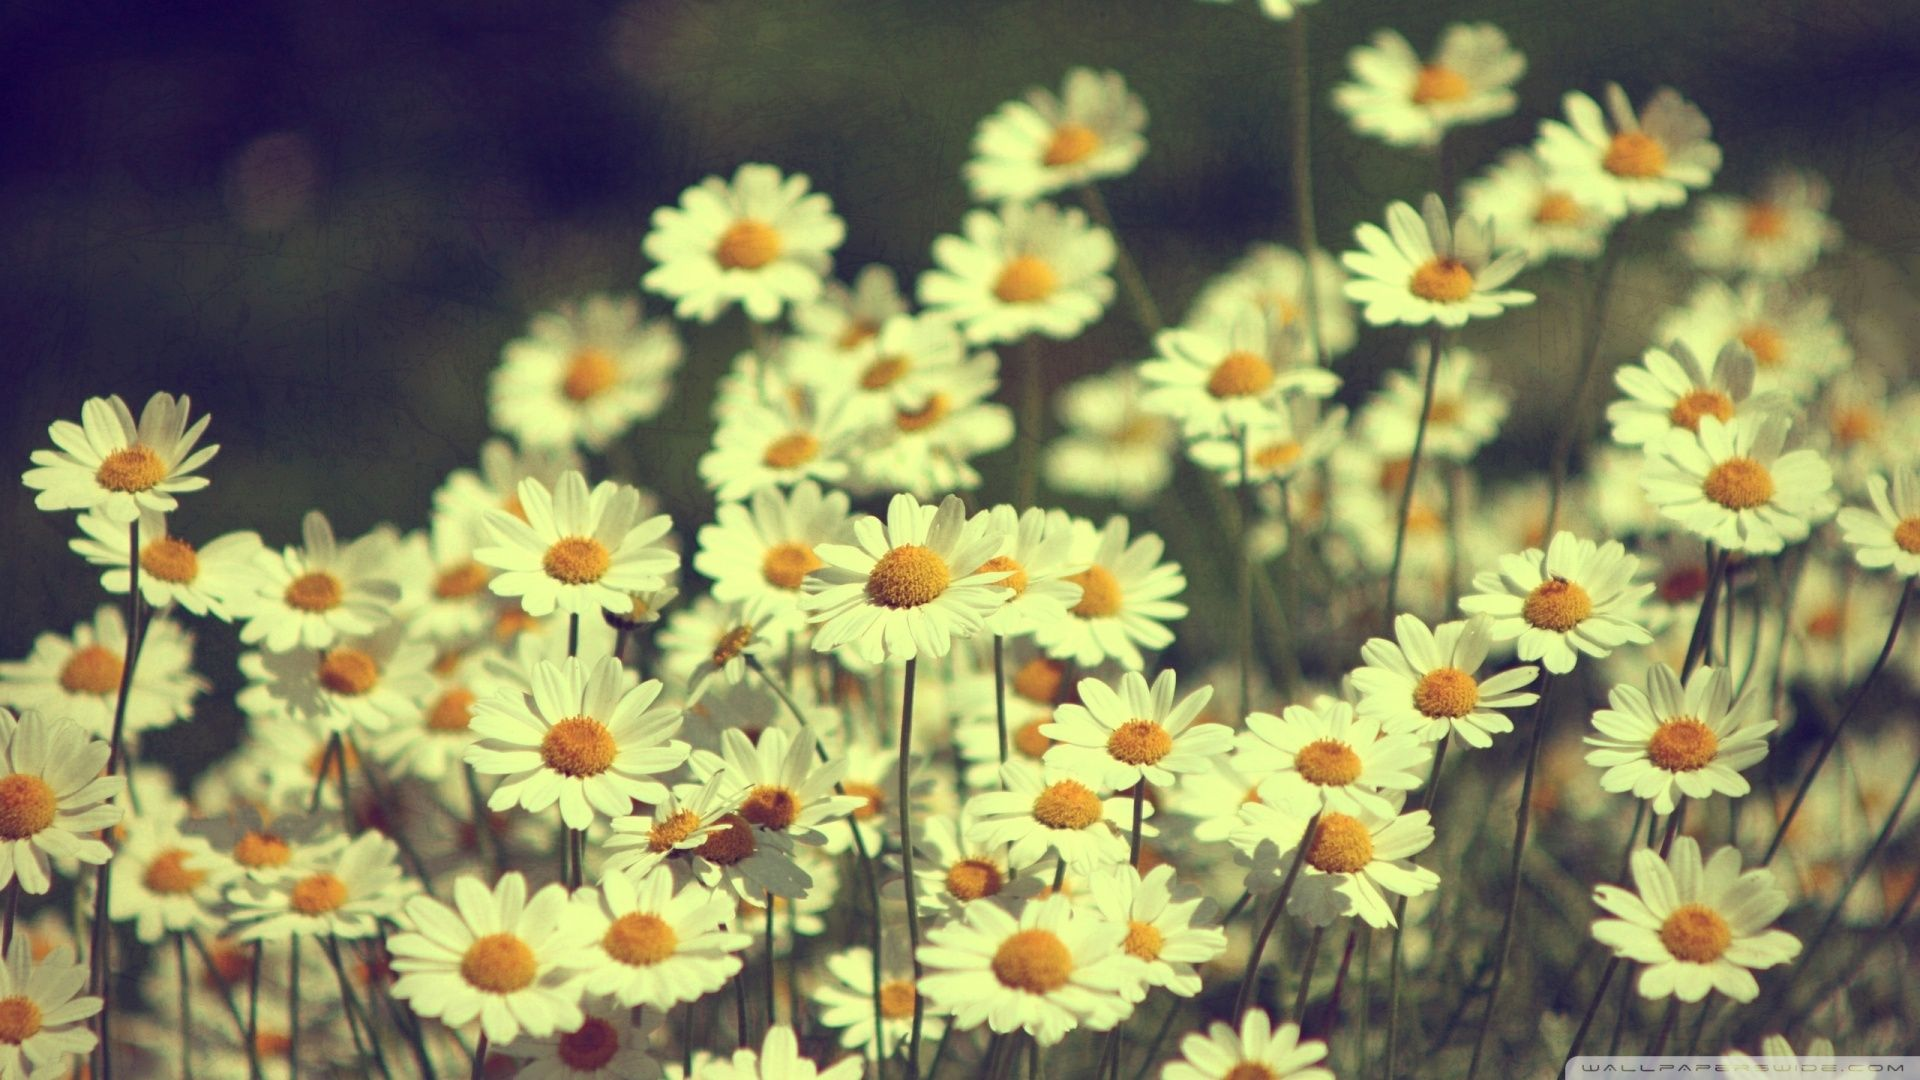 Vintage daisies photography wallpaper hd flower power pinterest vintage daisies photography wallpaper hd izmirmasajfo